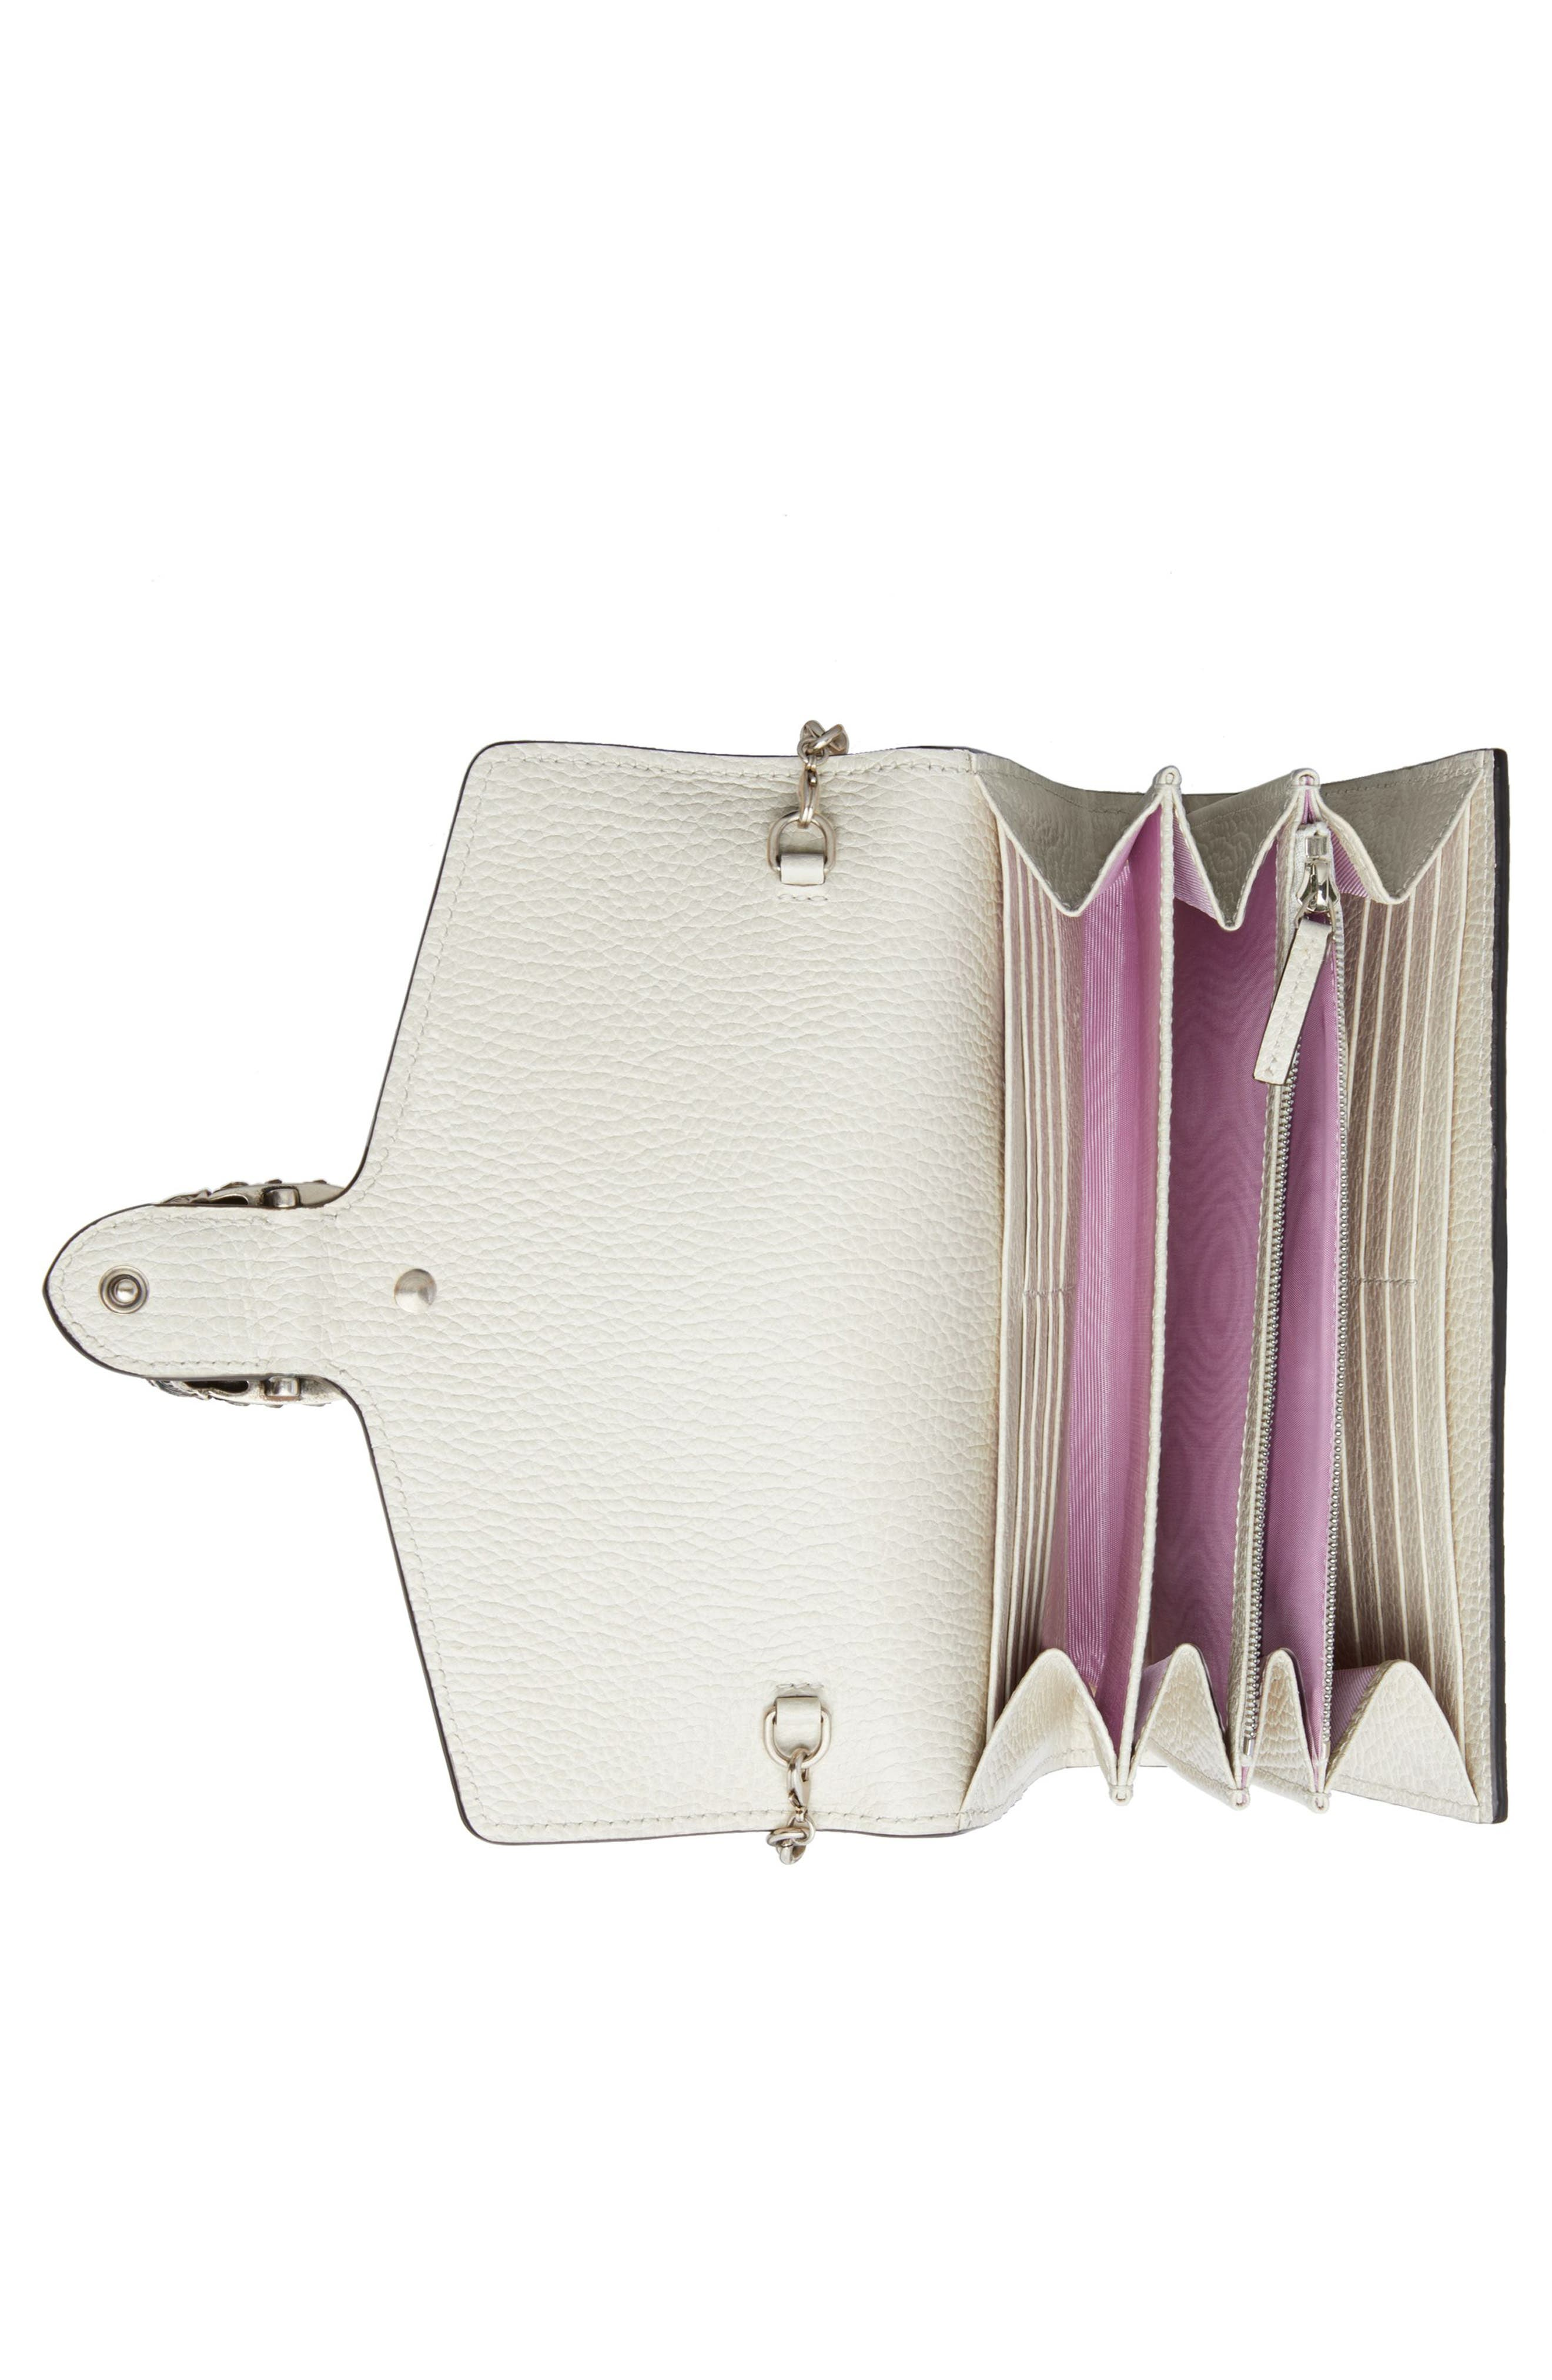 Small Dionysus Leather Clutch,                             Alternate thumbnail 3, color,                             MYSTIC WHITE/ BLACK DIAMOND